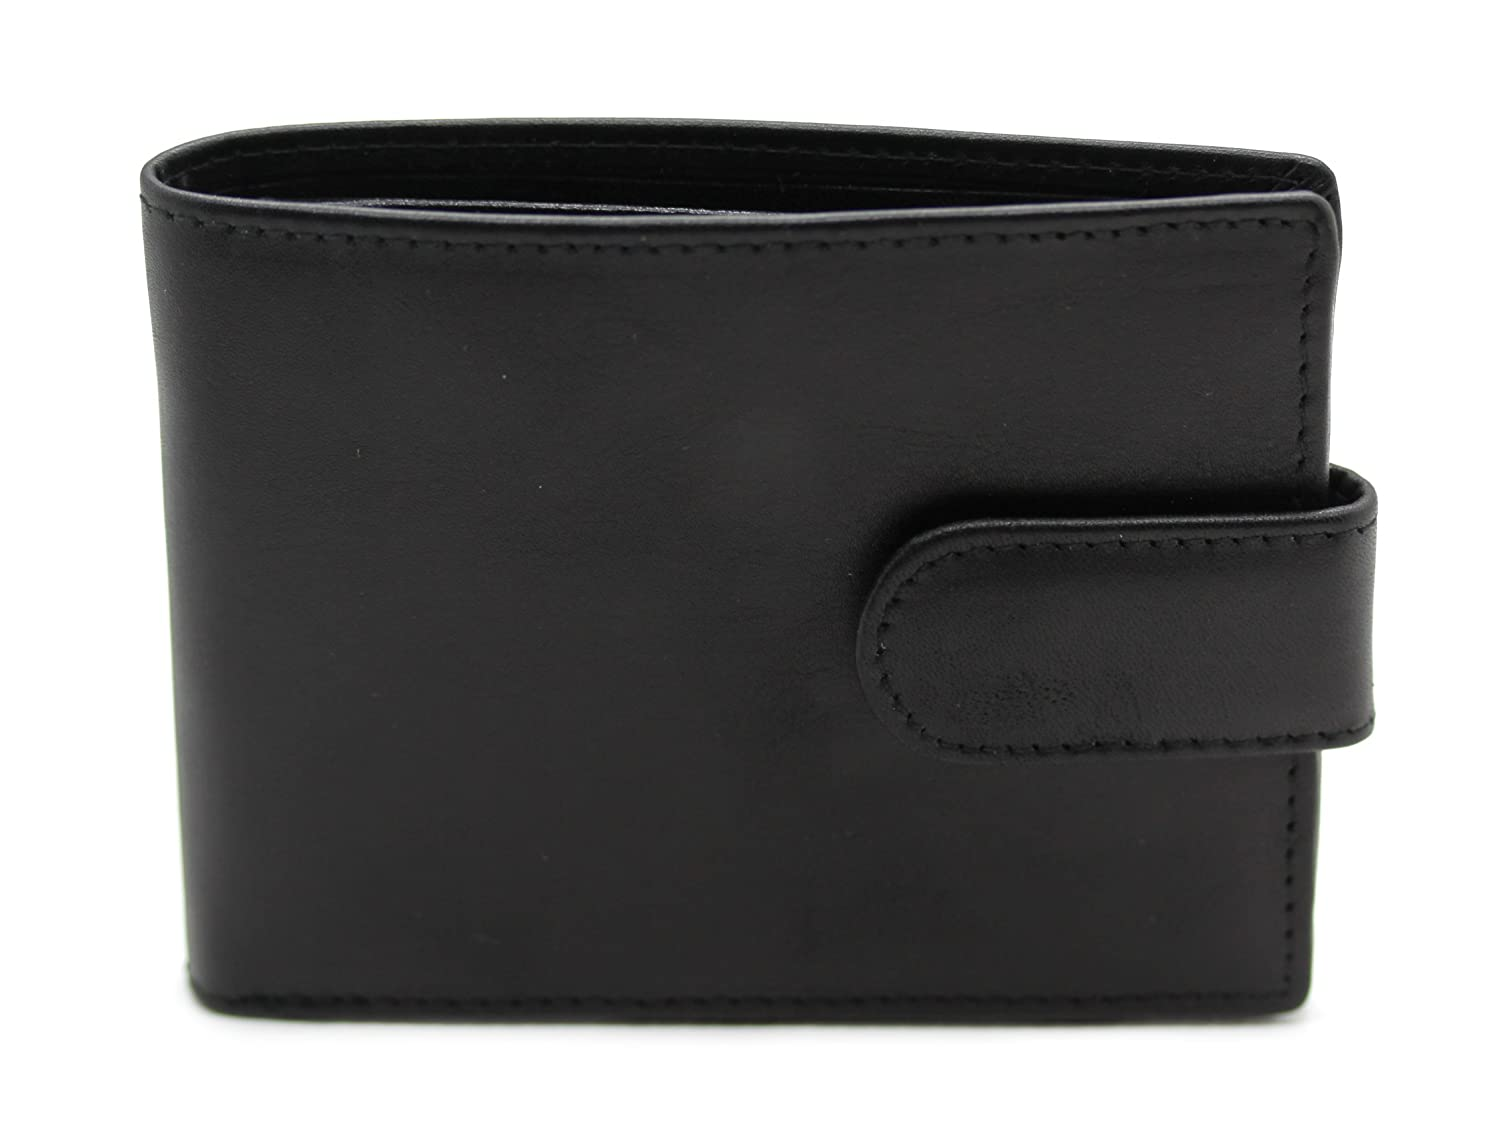 bcc0d9eef381 Smith   Canova Mens Leather Card Wallet  84092  - Black  Amazon.co.uk   Clothing